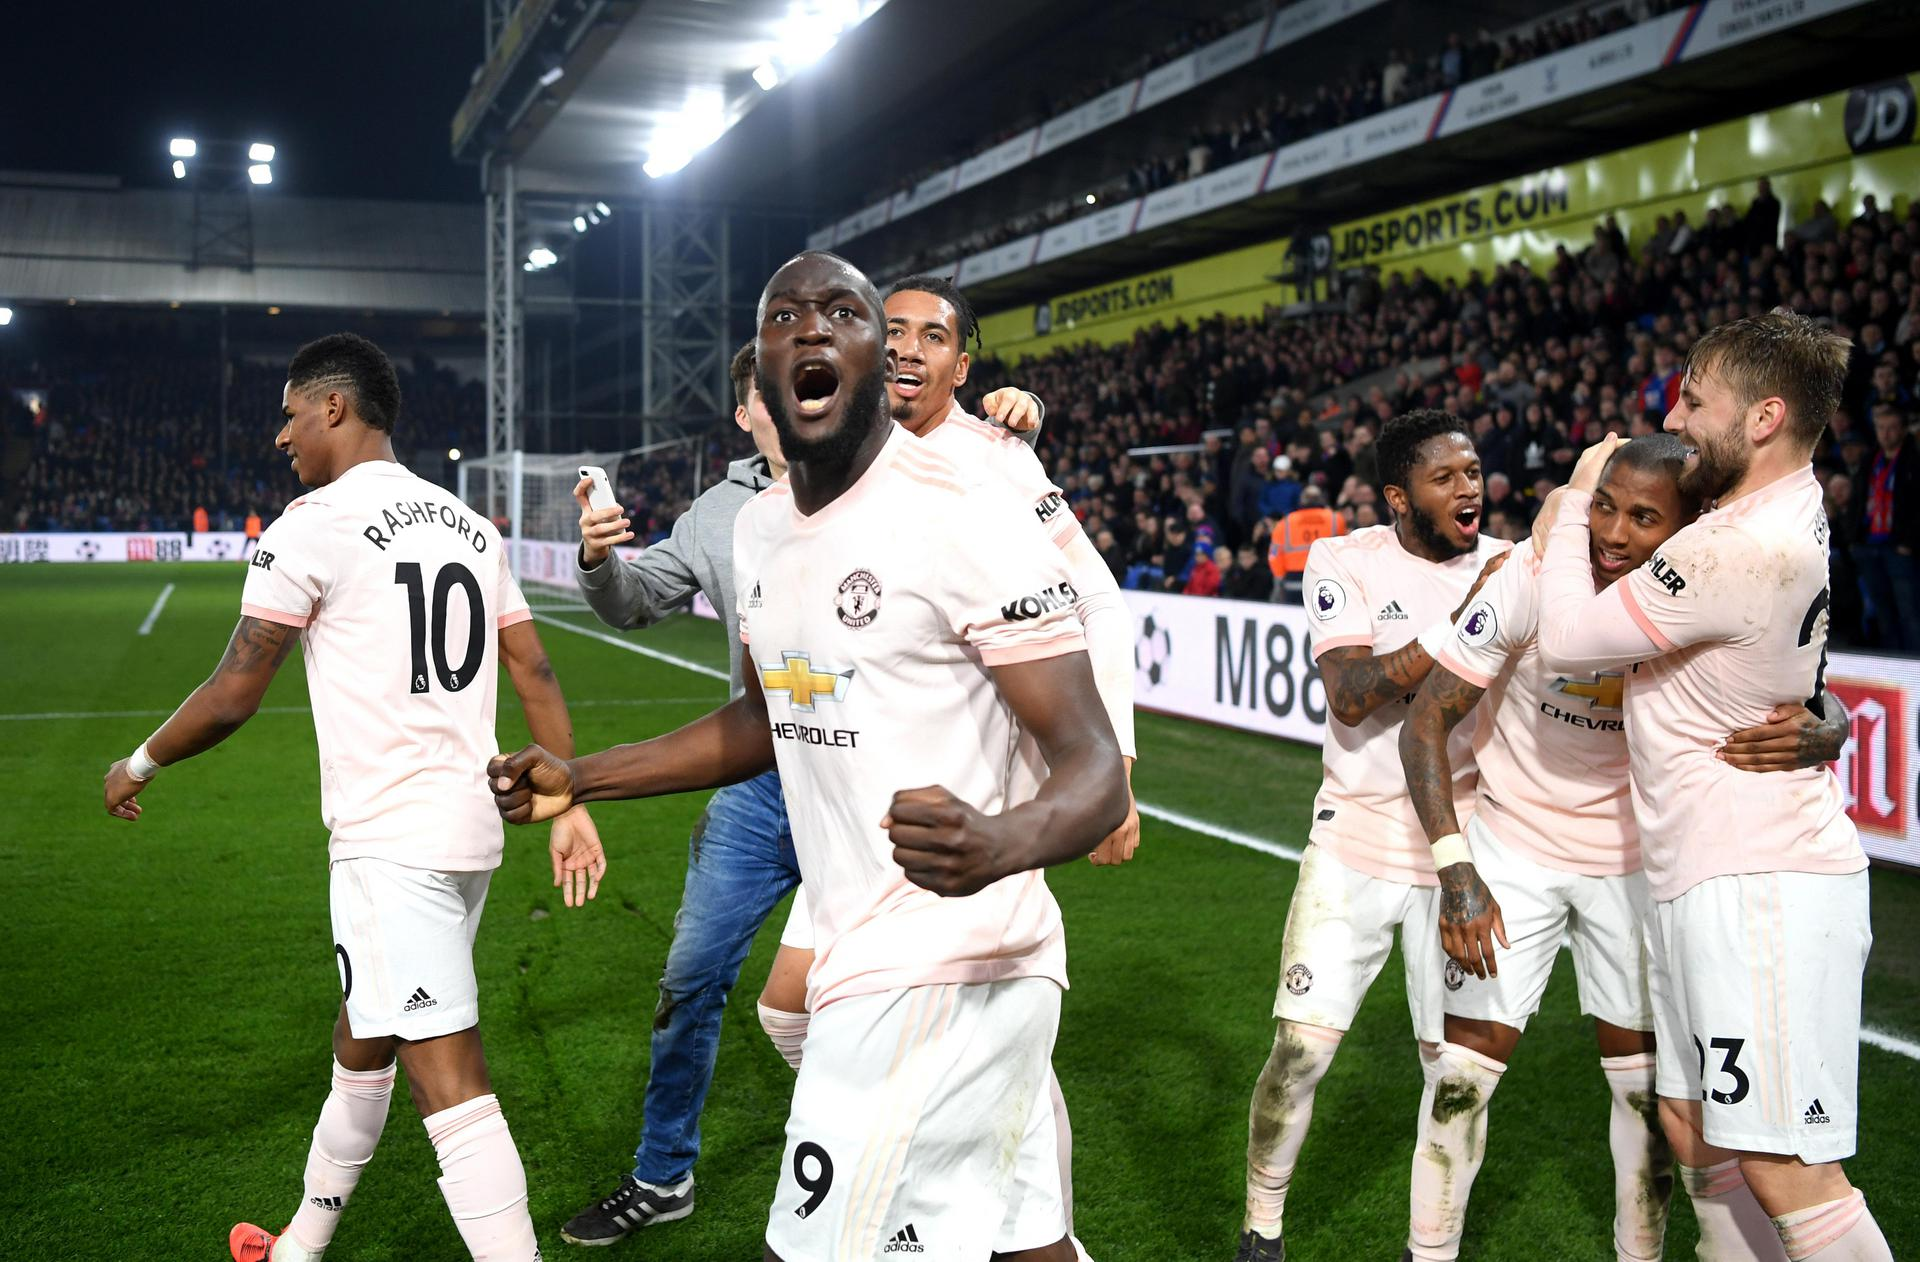 Romelu Lukaku celebrates with his Manchester United team-mates.